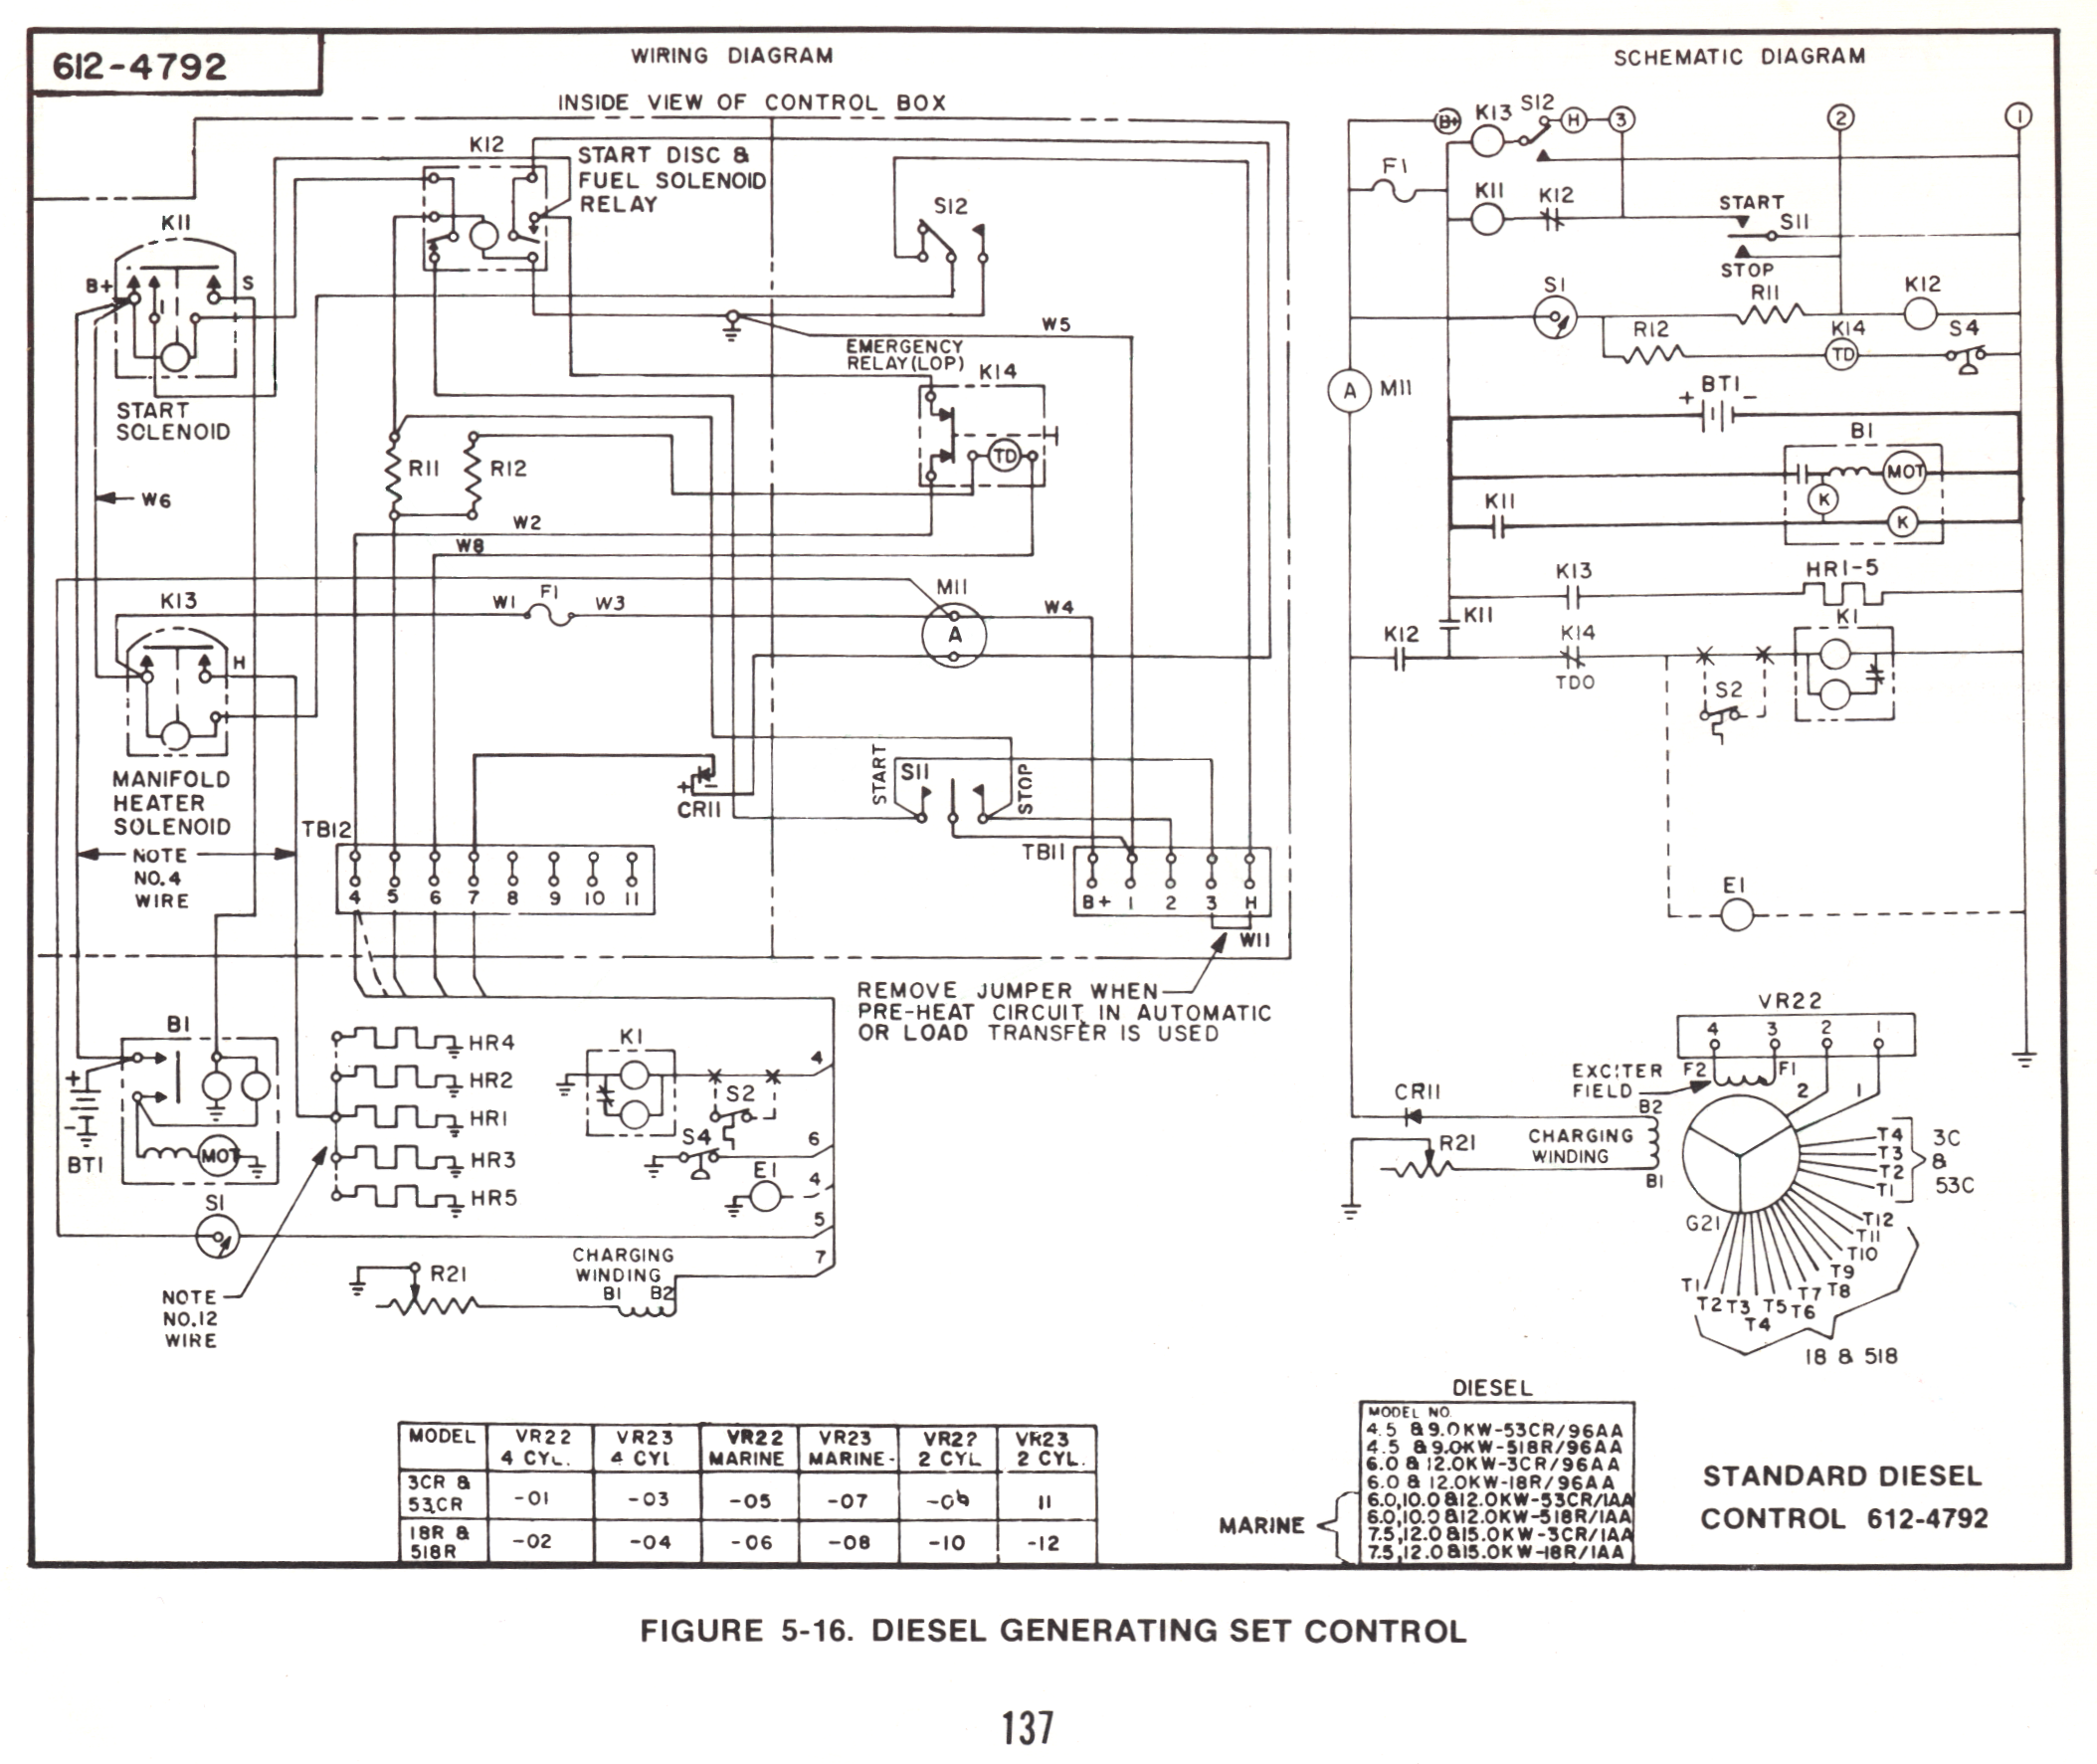 wiring diagram for onan generator get free image about wiring diagram